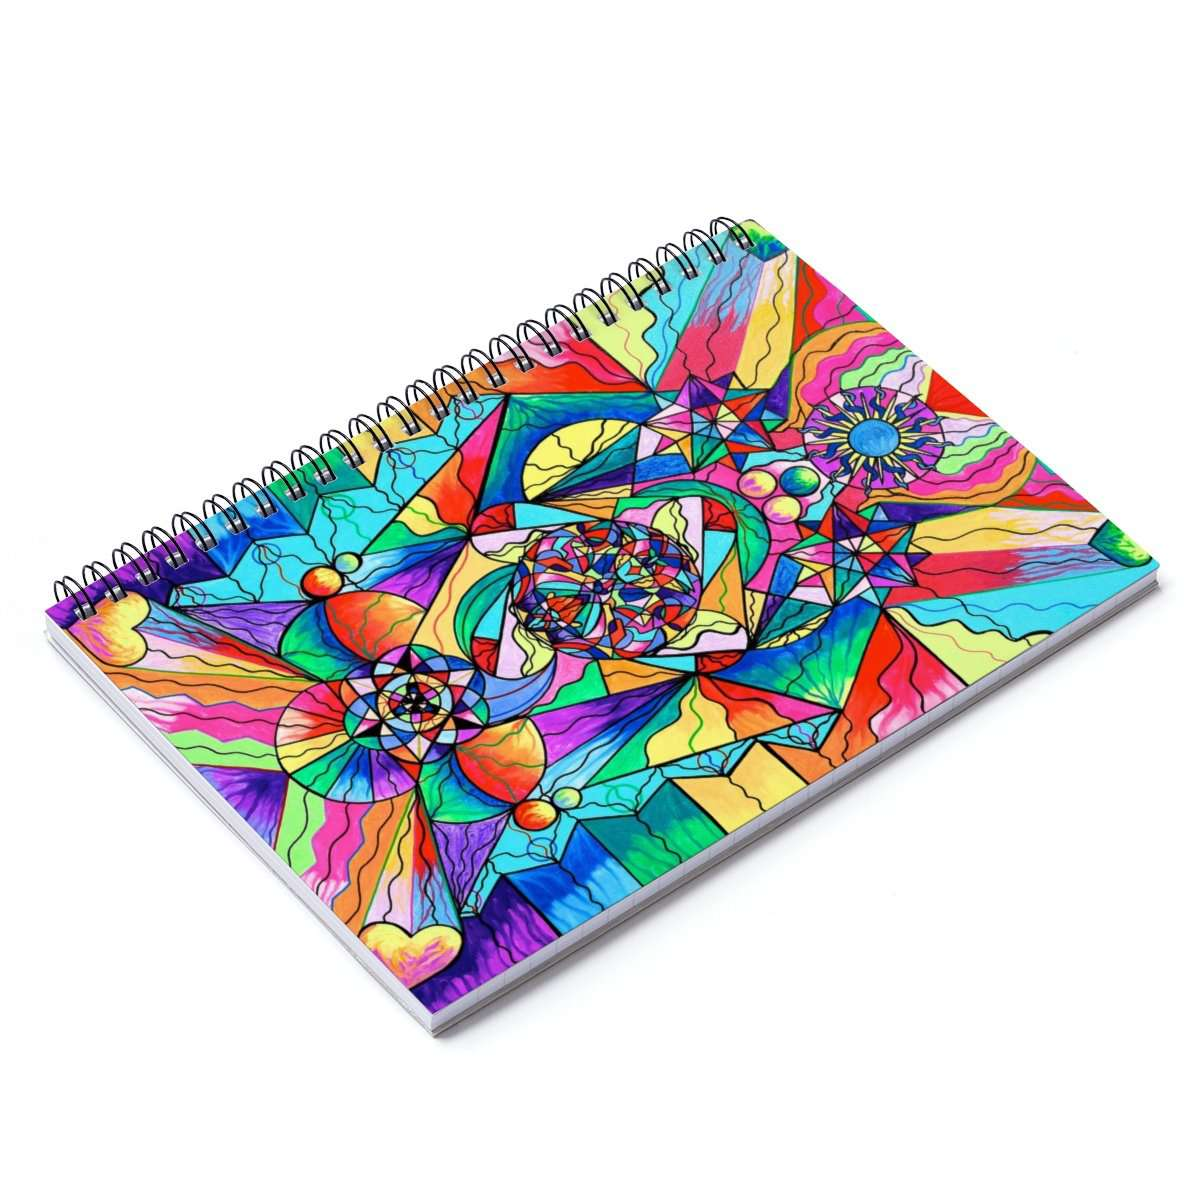 Blue Ray Transcendence Grid - Spiral Notebook